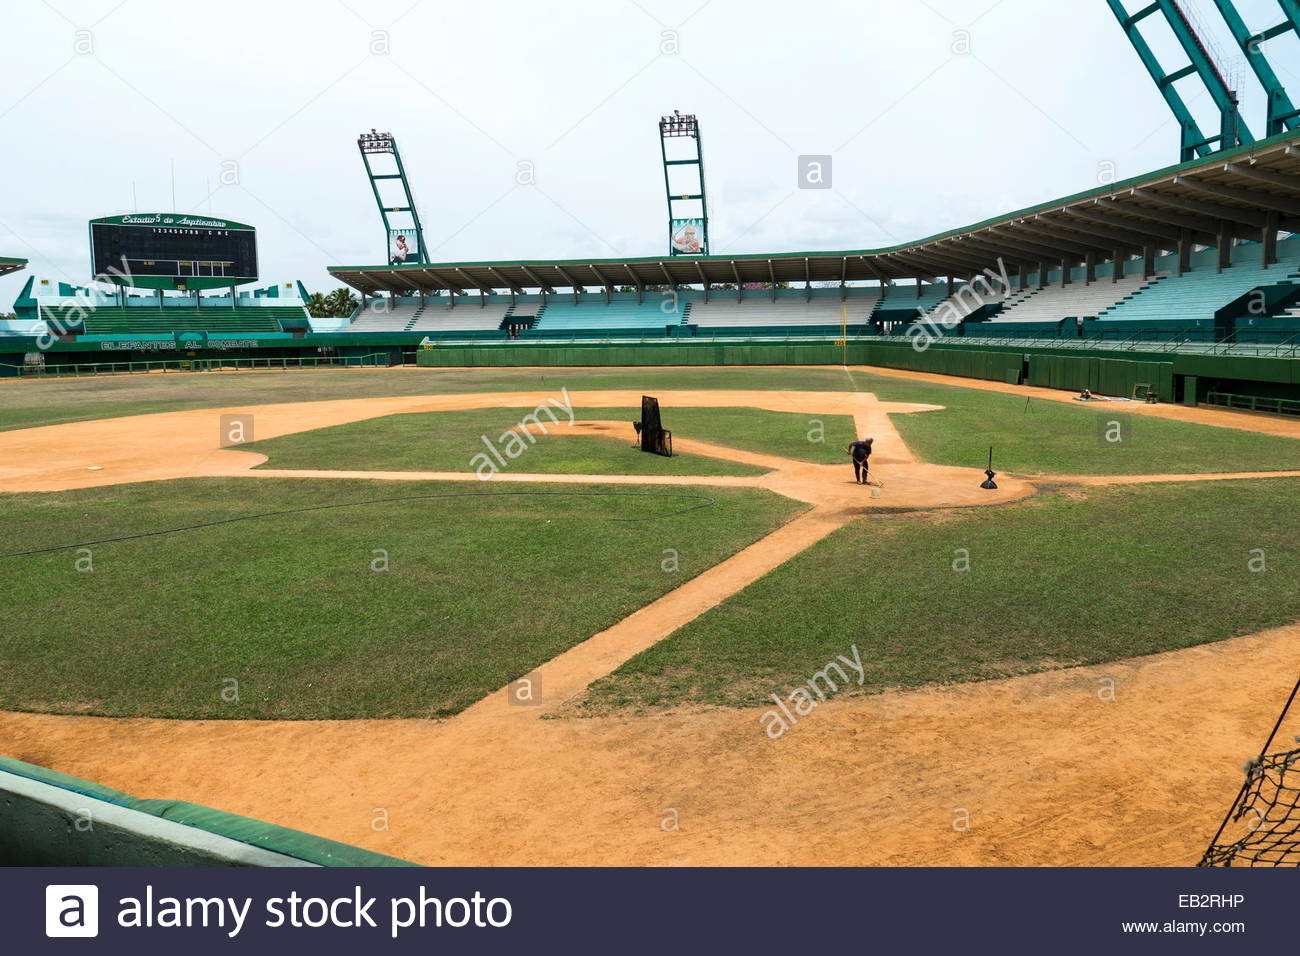 Cinco de septiembre baseball stadium in cienfuegos cuba stock photo cinco de septiembre baseball stadium in cienfuegos cuba malvernweather Image collections